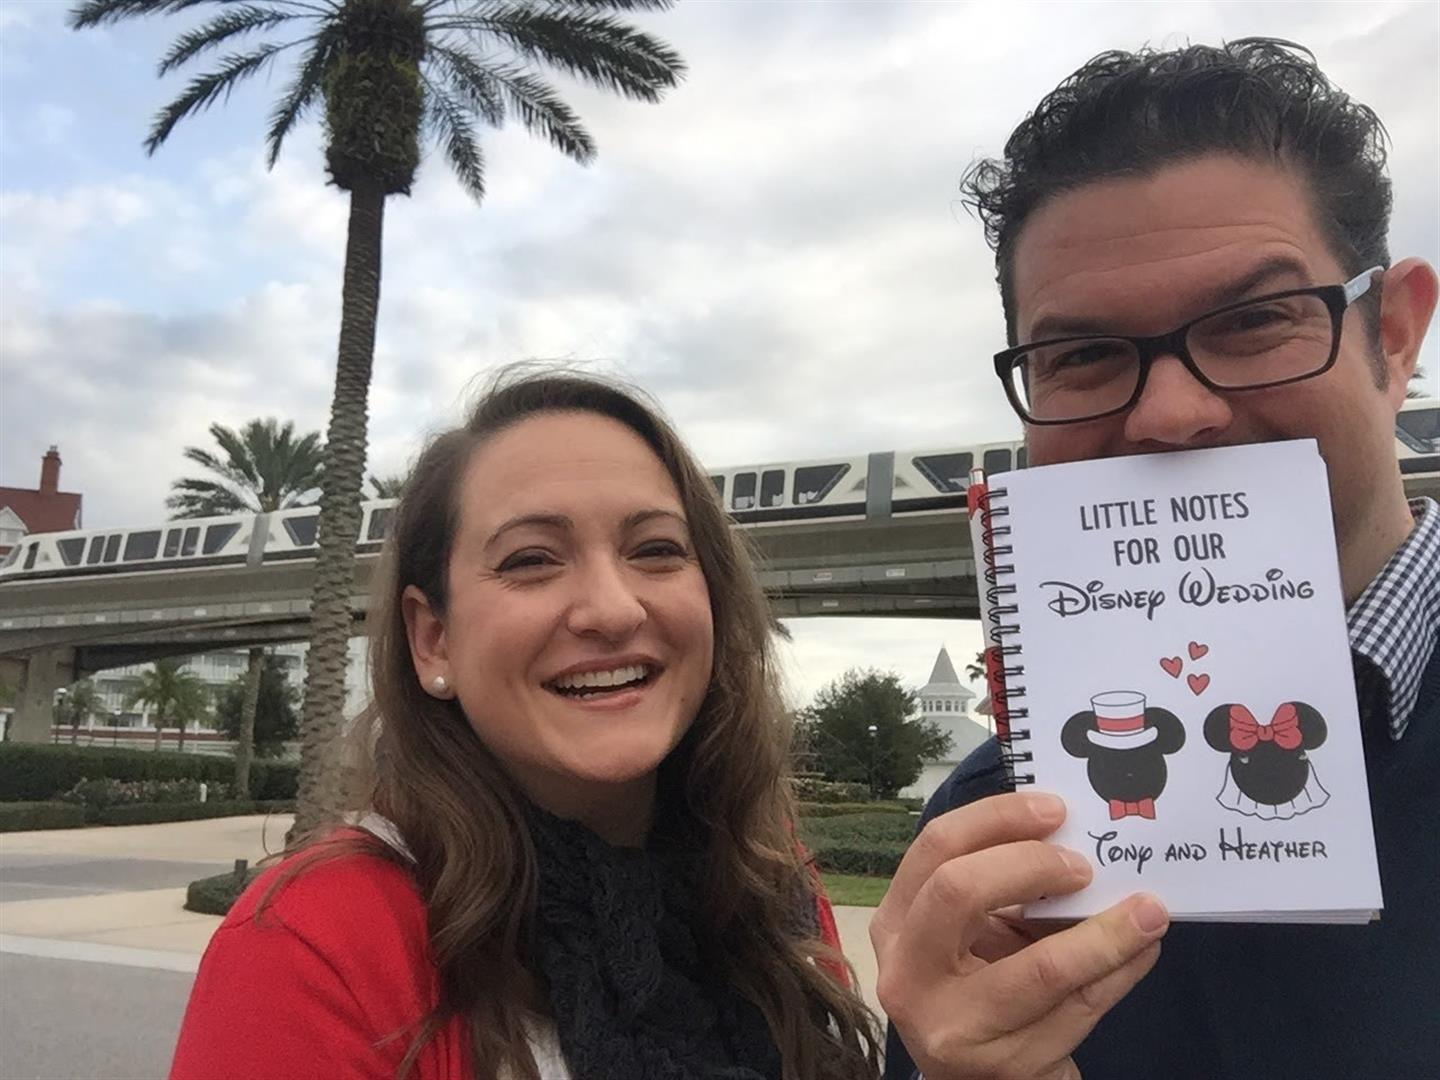 Little Notes for our Disney Wedding | MouseMingle.com